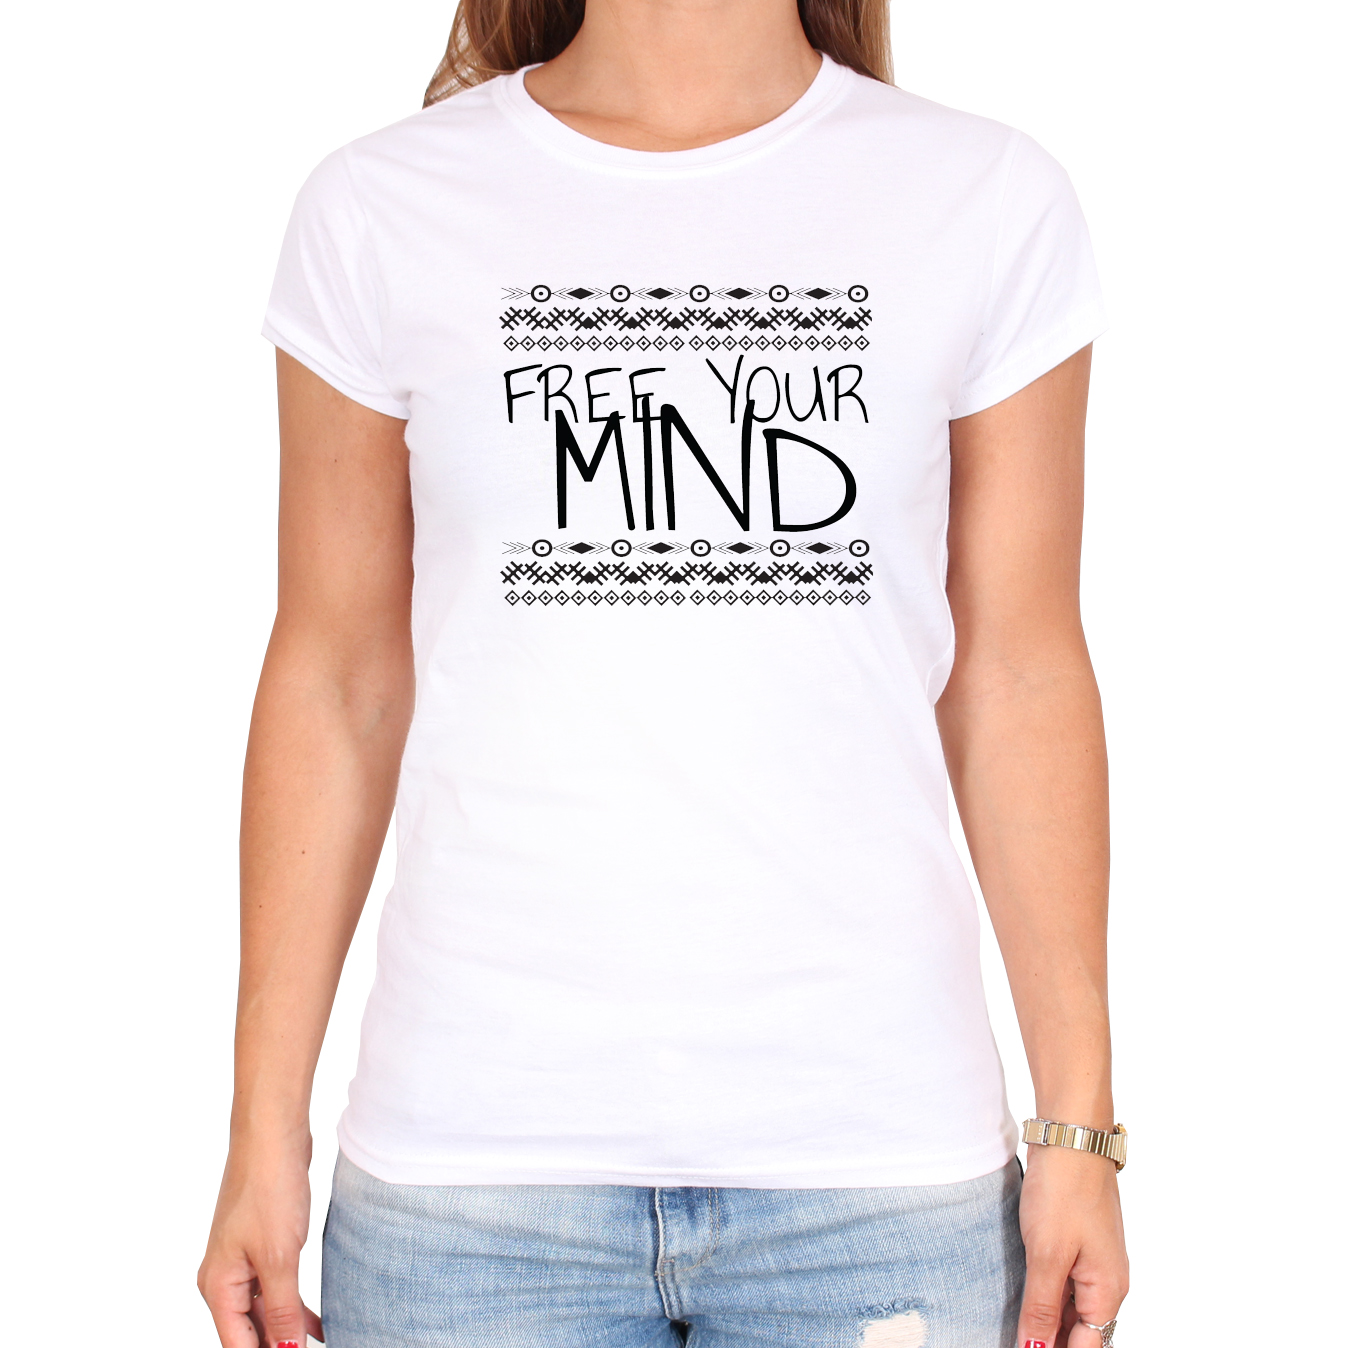 Vintage_Shirts2_weiss_ladies_free_your_mind